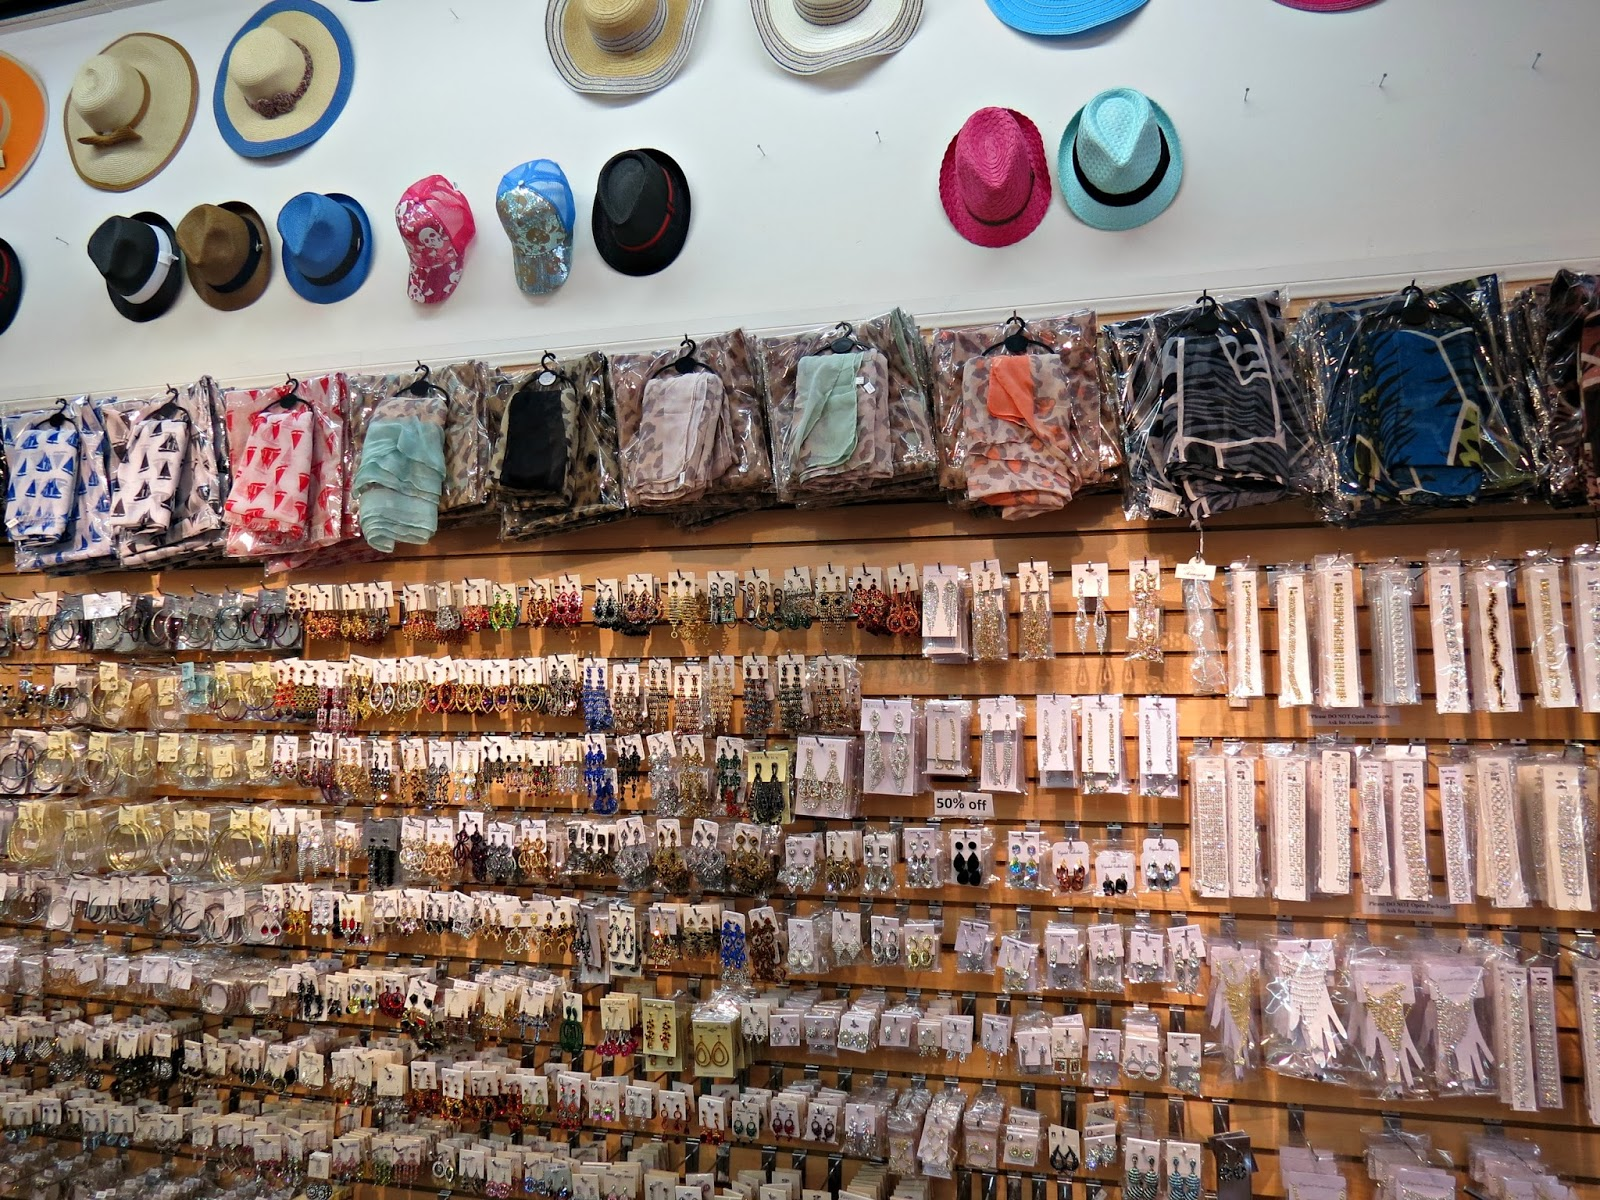 The Santee Alley Fashion Fantasia Scarves and Bridal Accessories Specialty Store